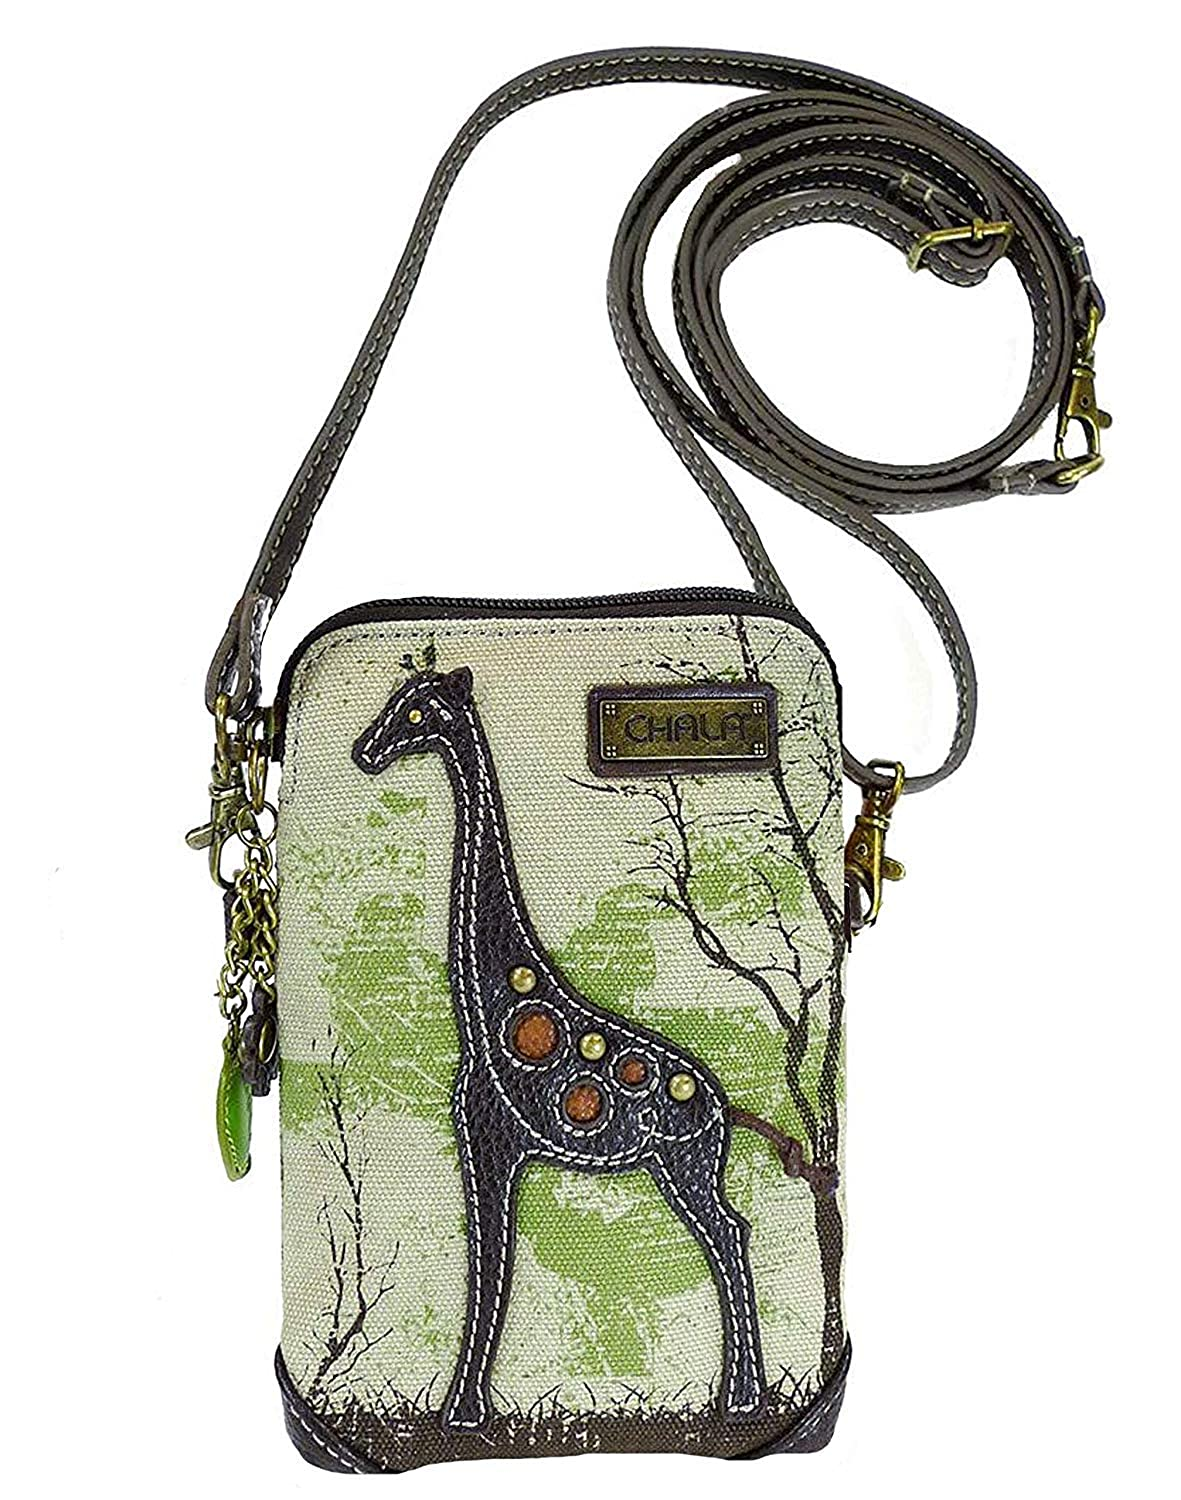 Chala Crossbody Cell Phone...